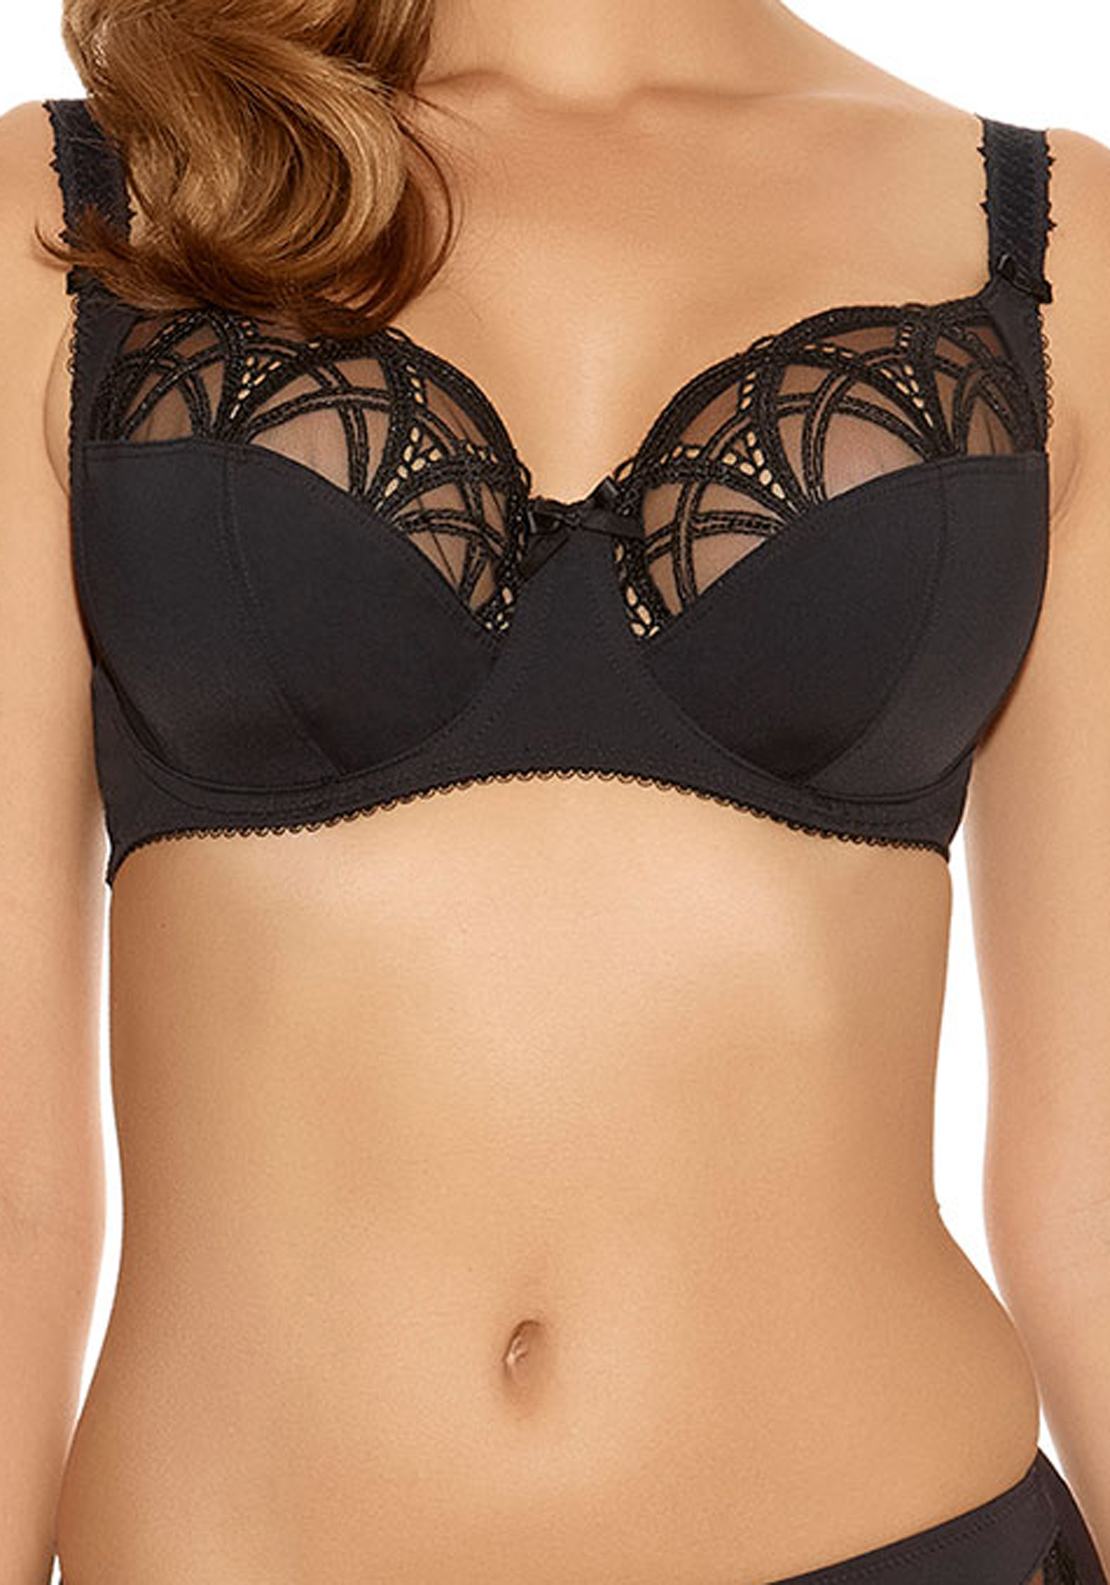 Fantasie Alex Lace Trim Underwired Bra, Black